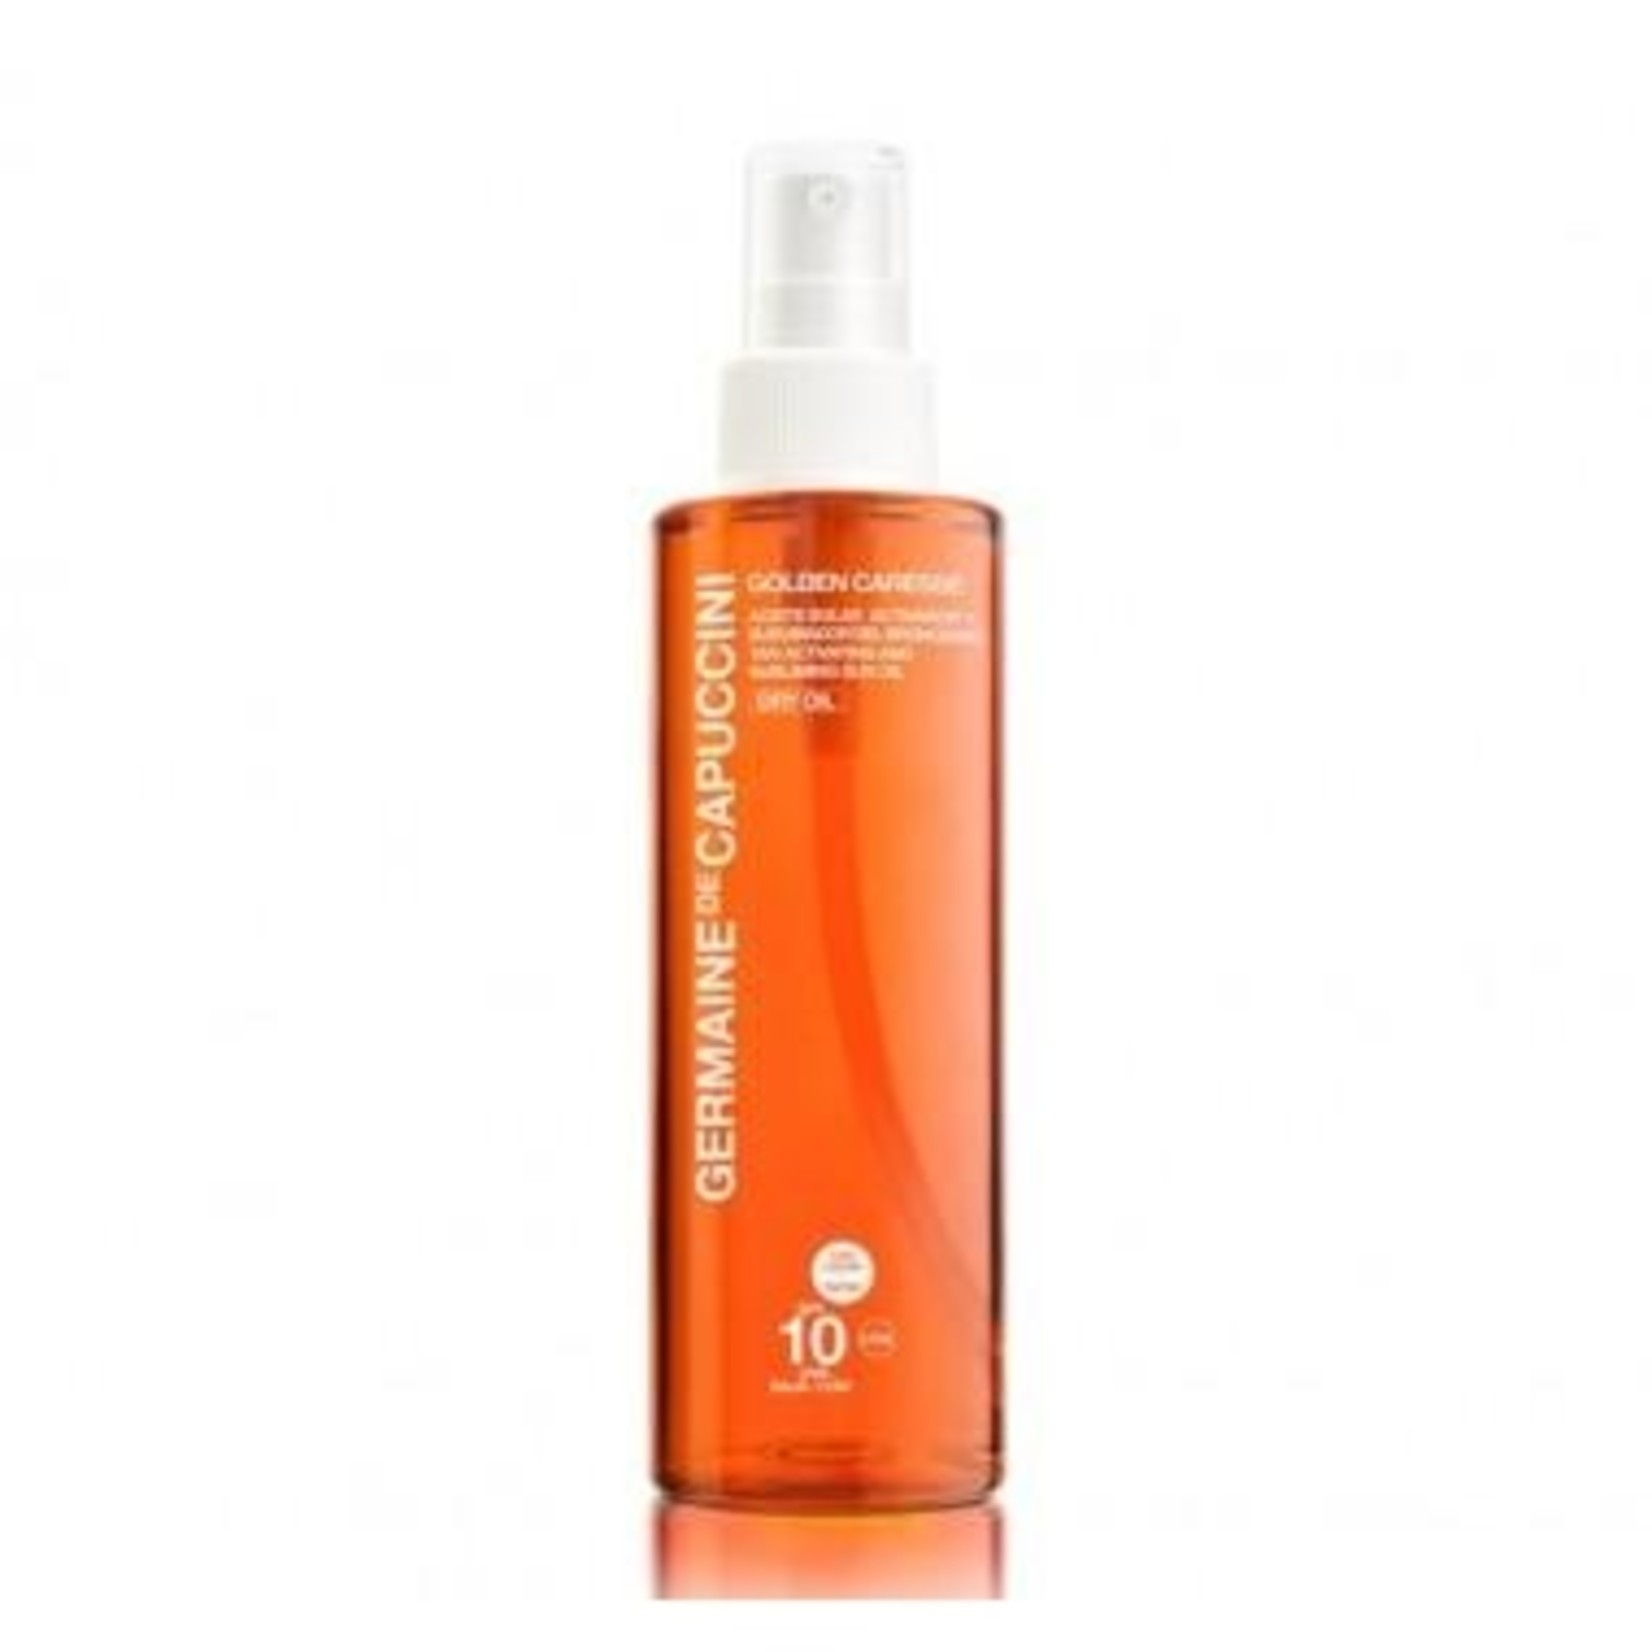 Germaine de Cappucini Tan Activating and Subliming Sun Oil SPF 10 Dry Oil Tinted